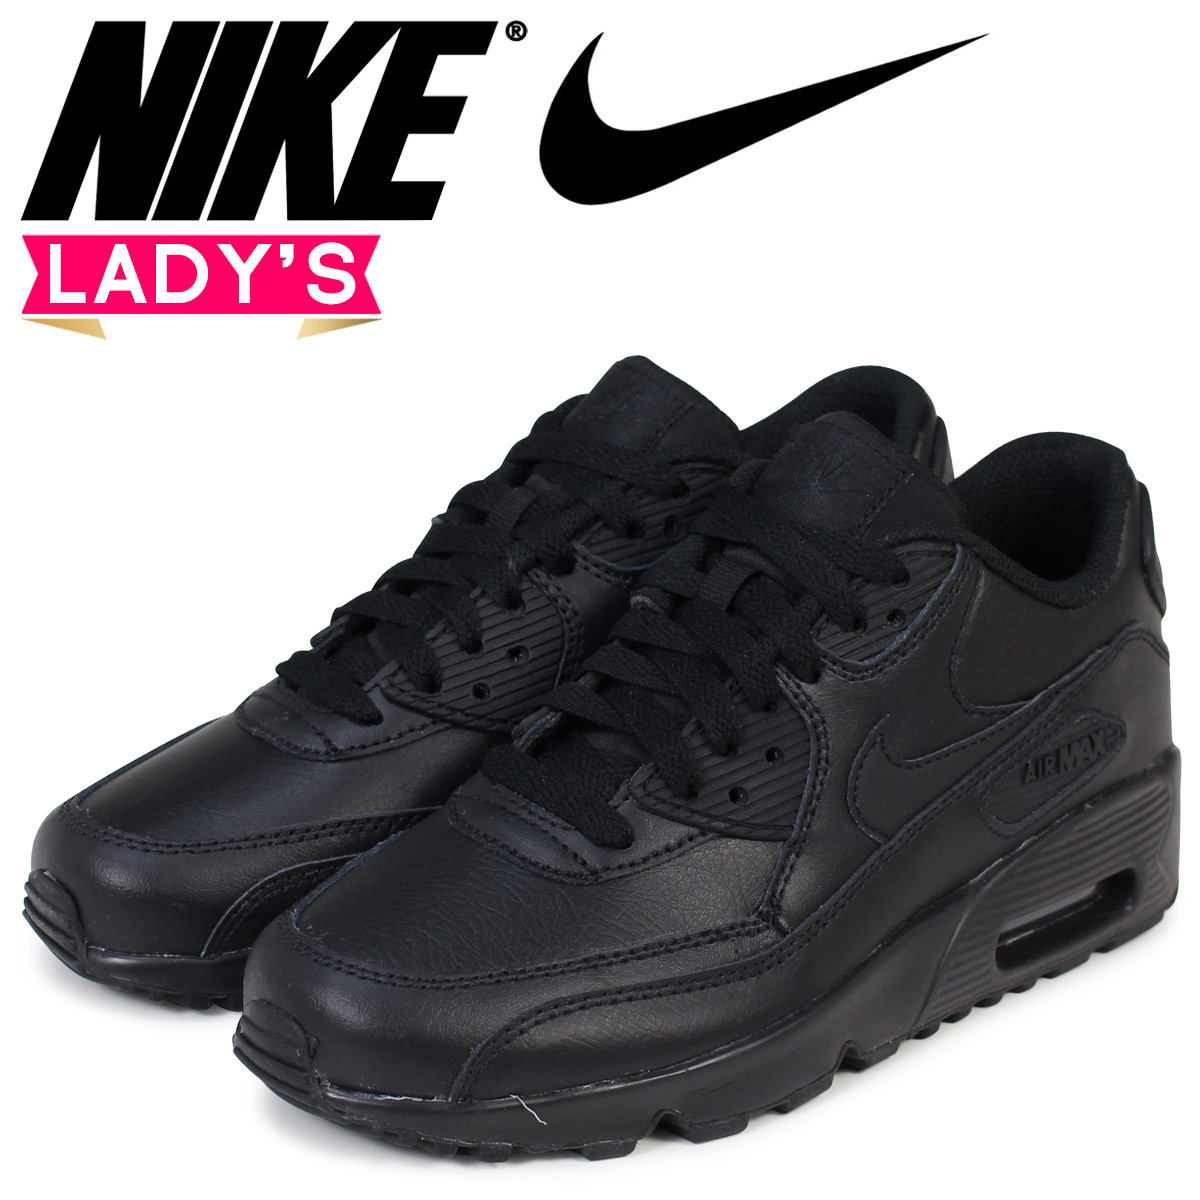 b8fd4a4935175 The origin of the name comes from the Greece myths of one Jeff Johnson saw  in the dream, victory goddess Nike (Nike).